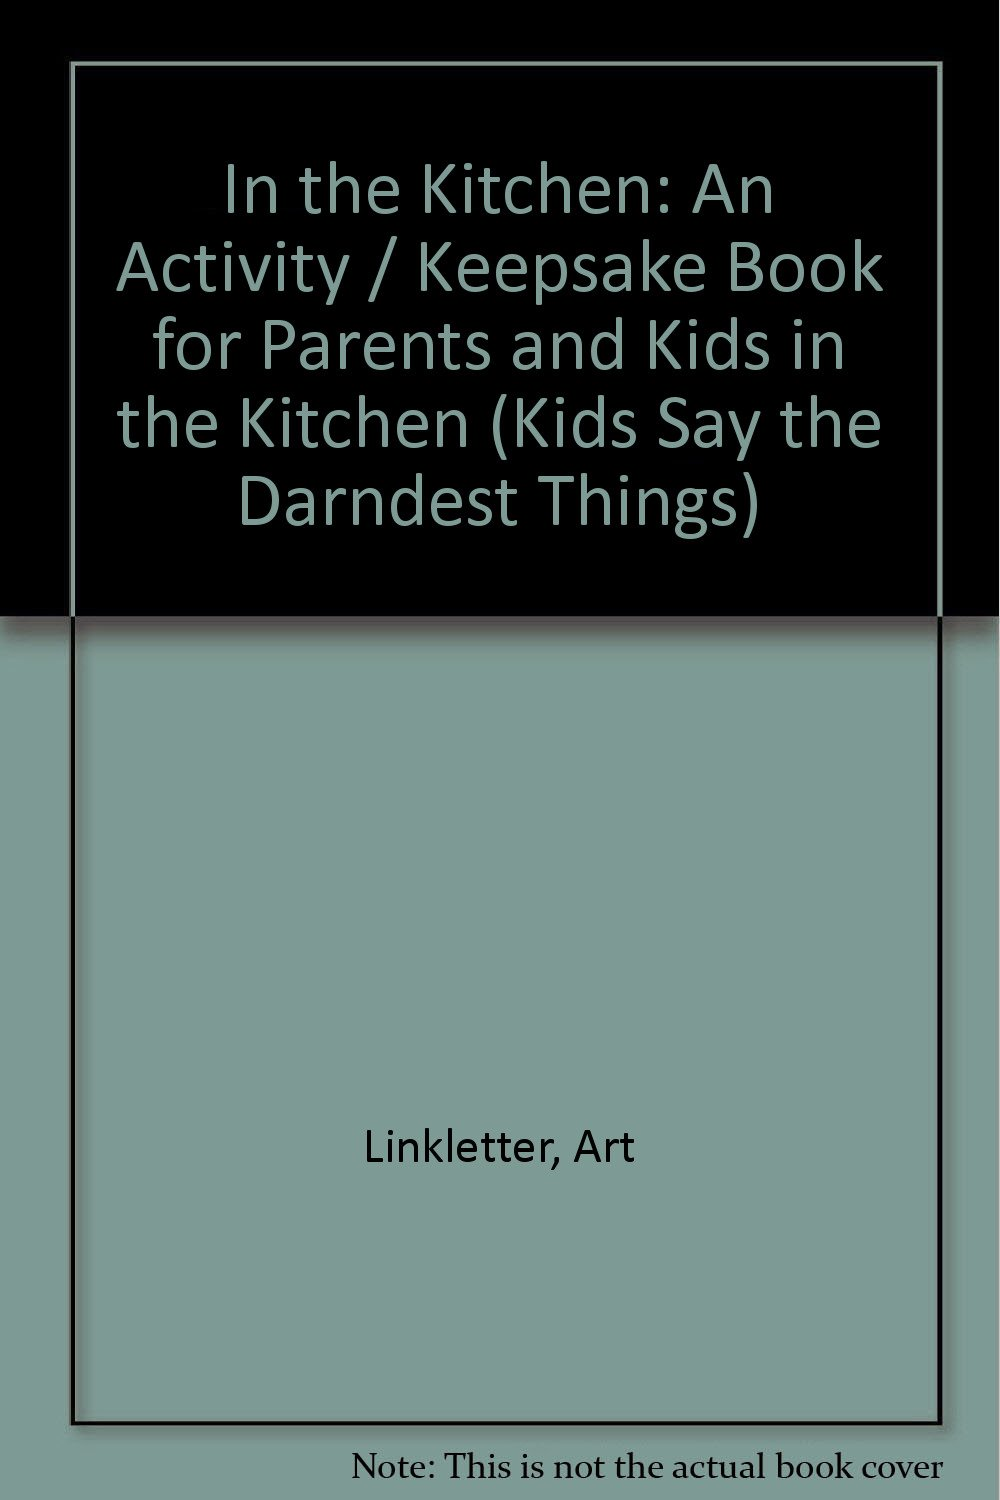 In the Kitchen: An Activity / Keepsake Book for Parents and Kids in ...